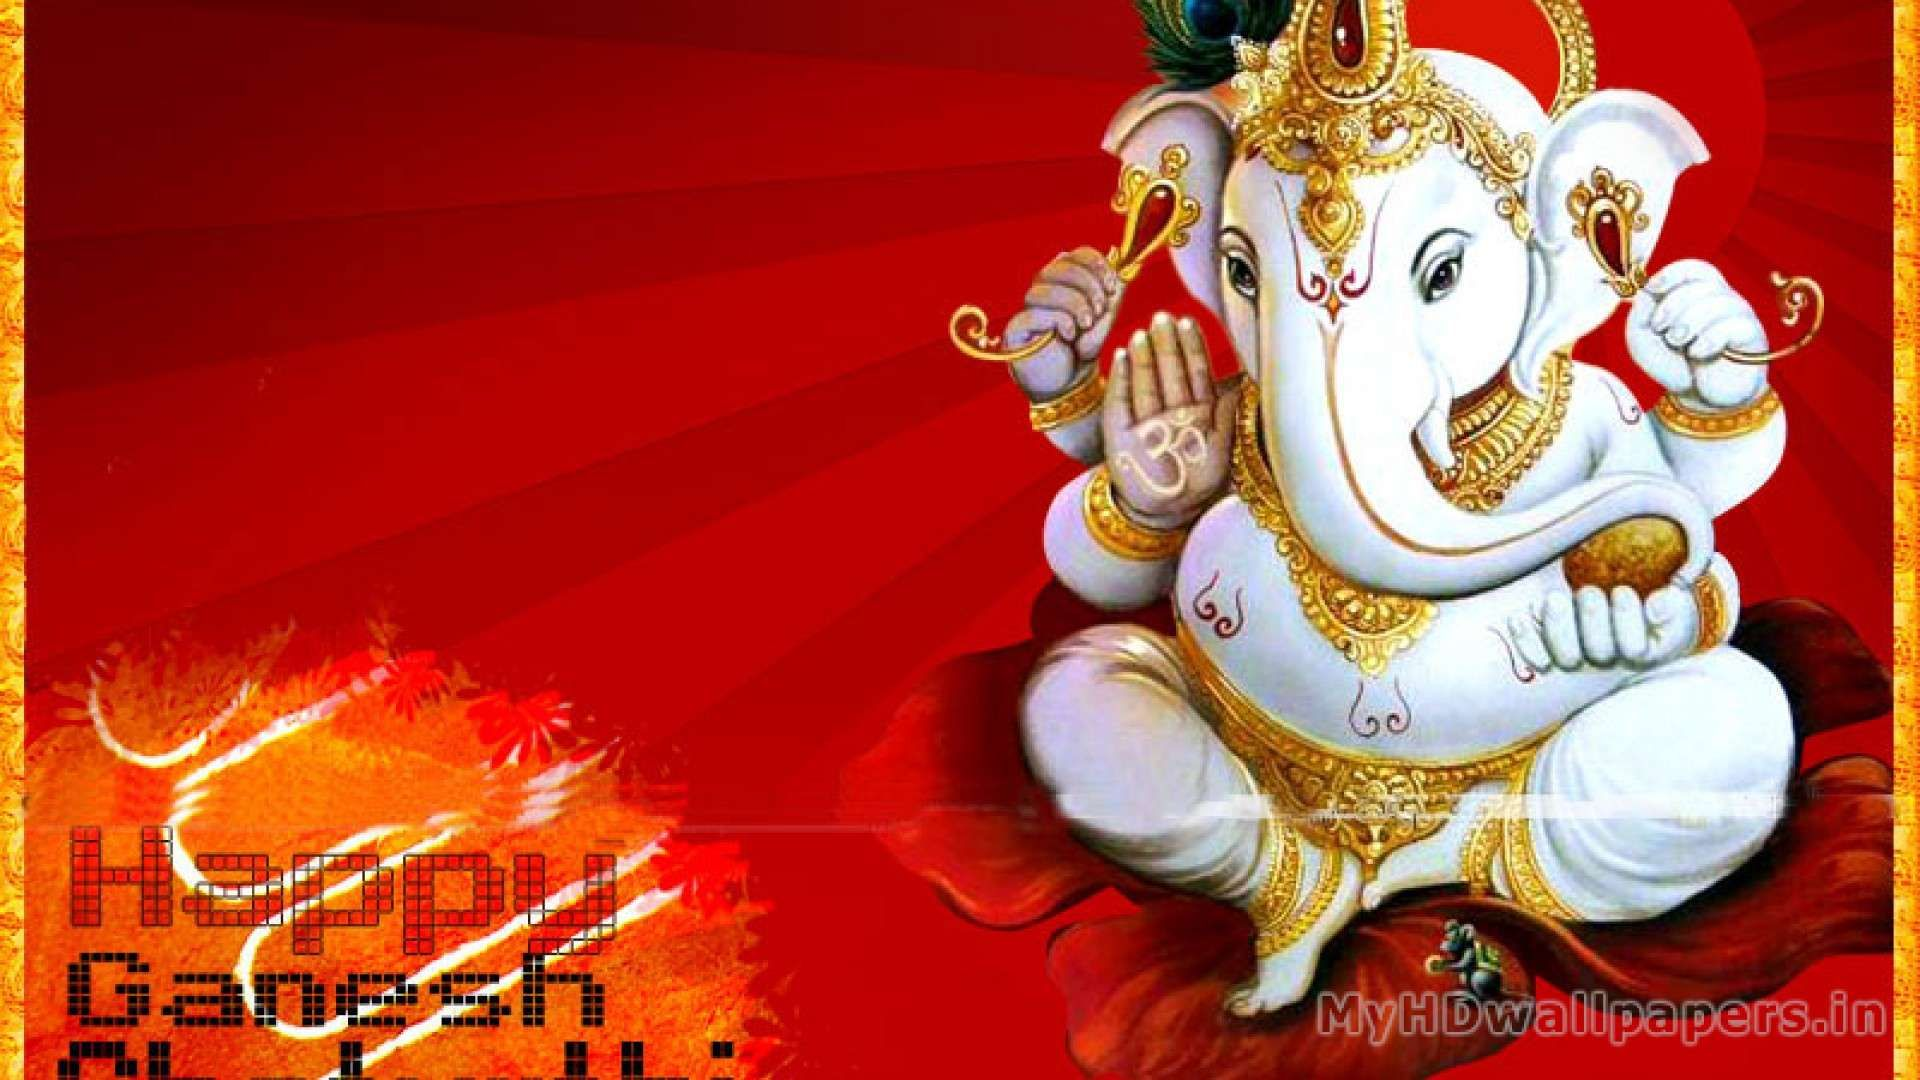 Ganesh Wallpaper Hd Quality For Pc Hd Wallpapers